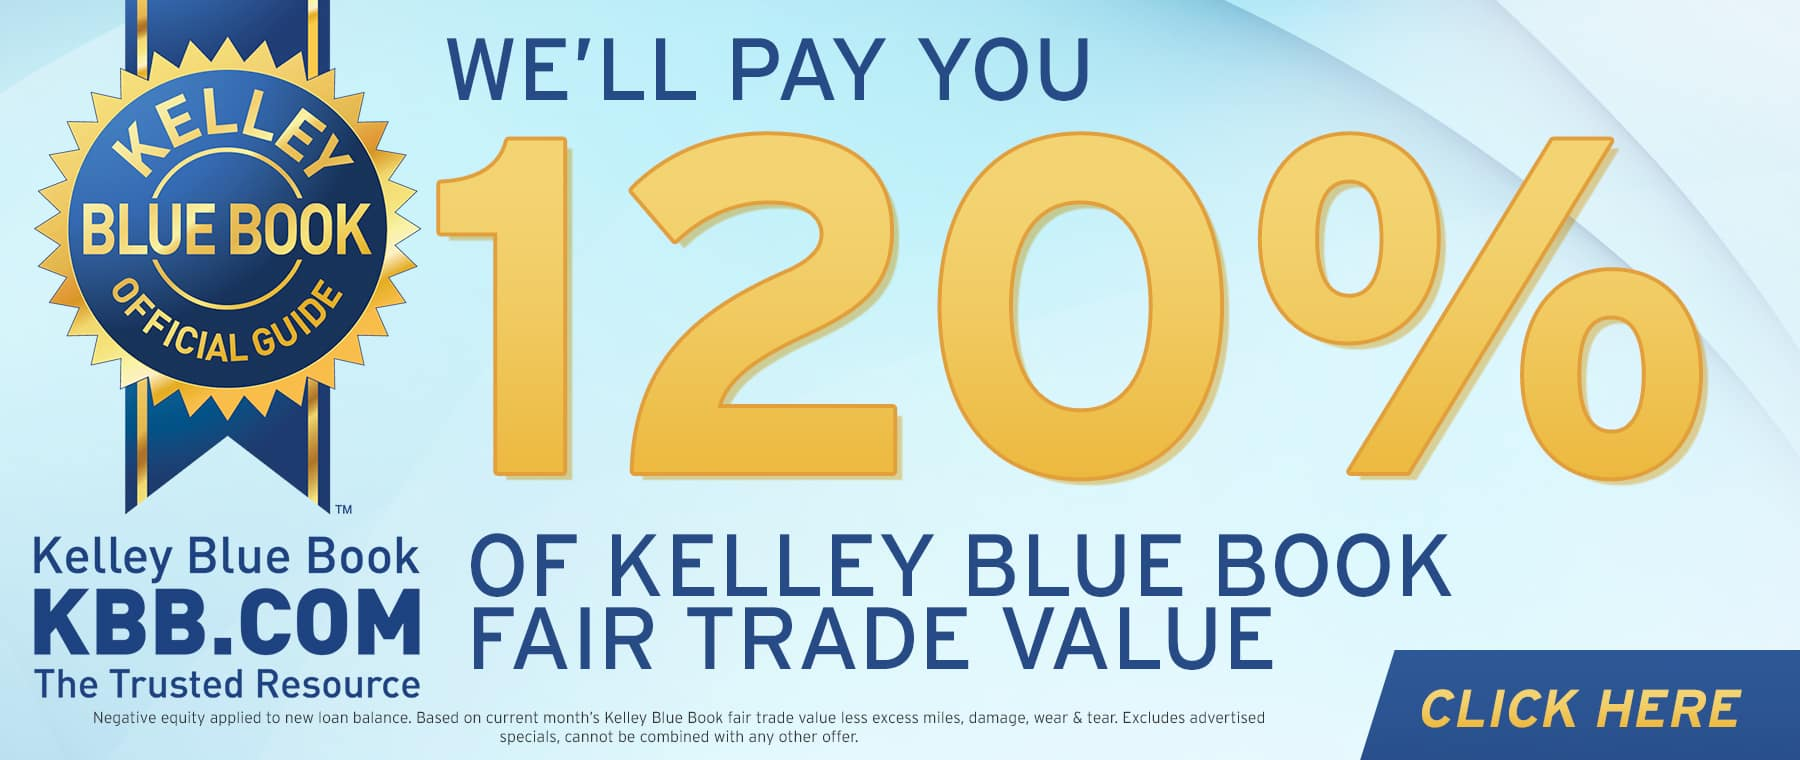 WE'LL PAY YOU 120% OF KBB FAIR TRADE VALUE